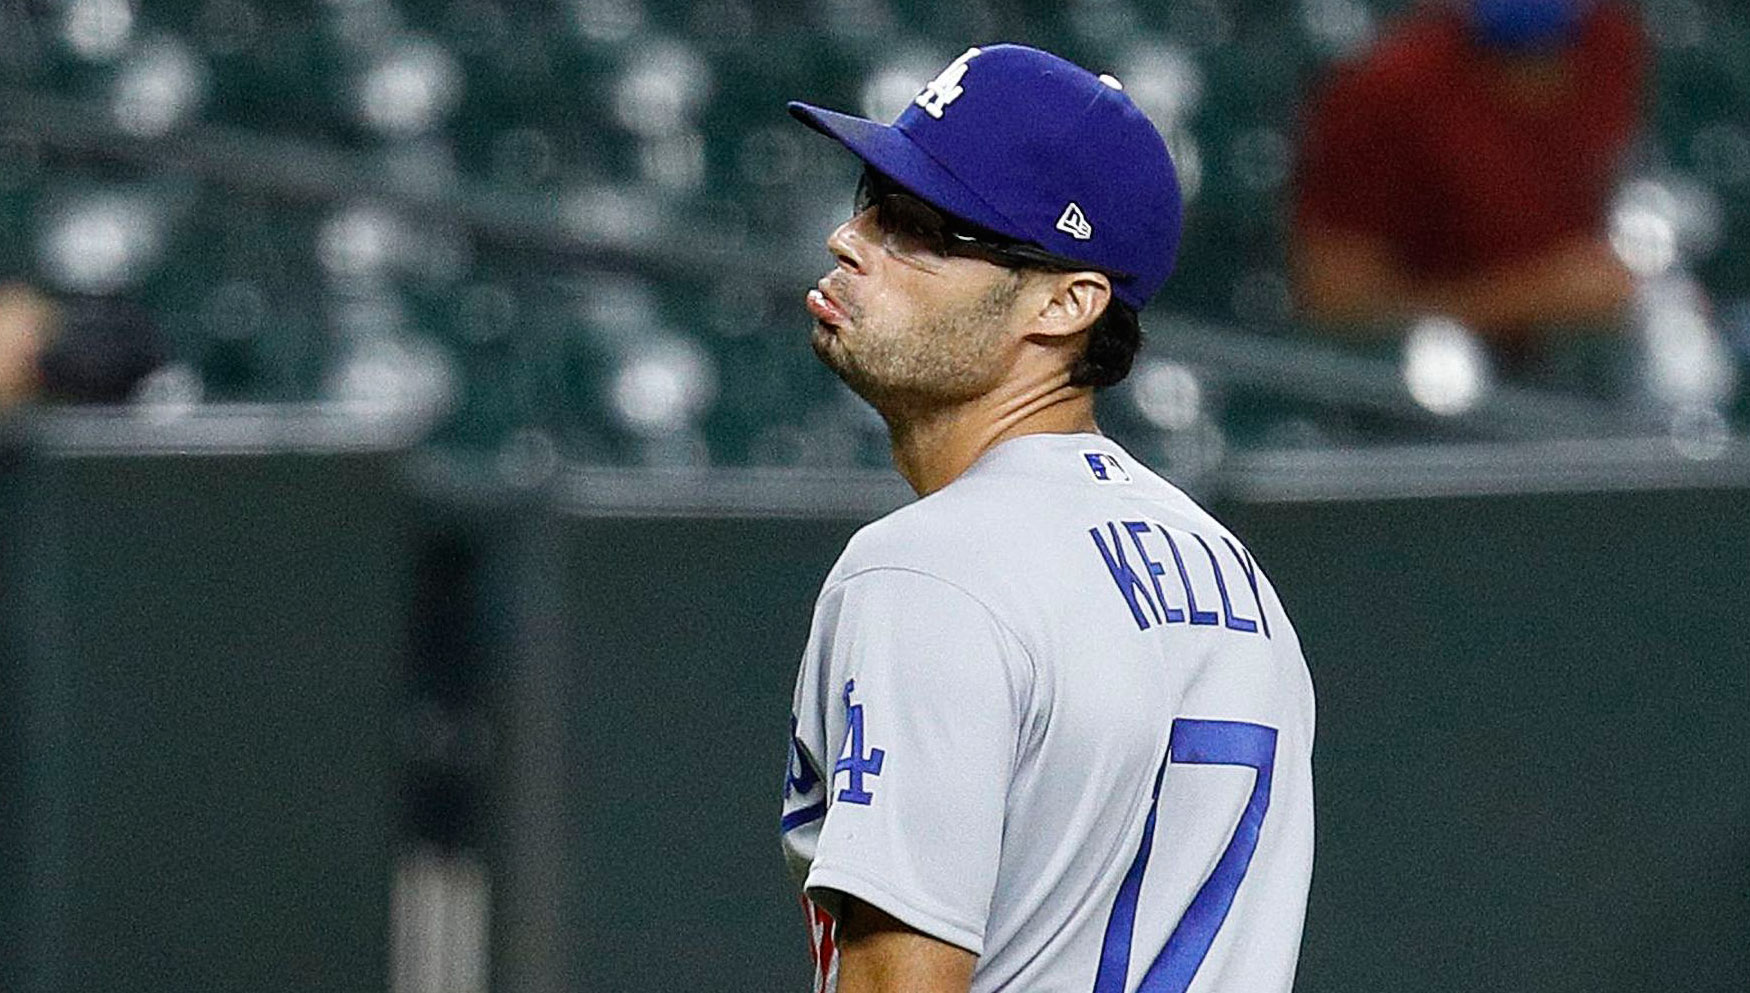 Dodgers Pitcher Joe Kelly Making Fun Of The Astros Has Been Turned Into Some Glorious Memes Brobible